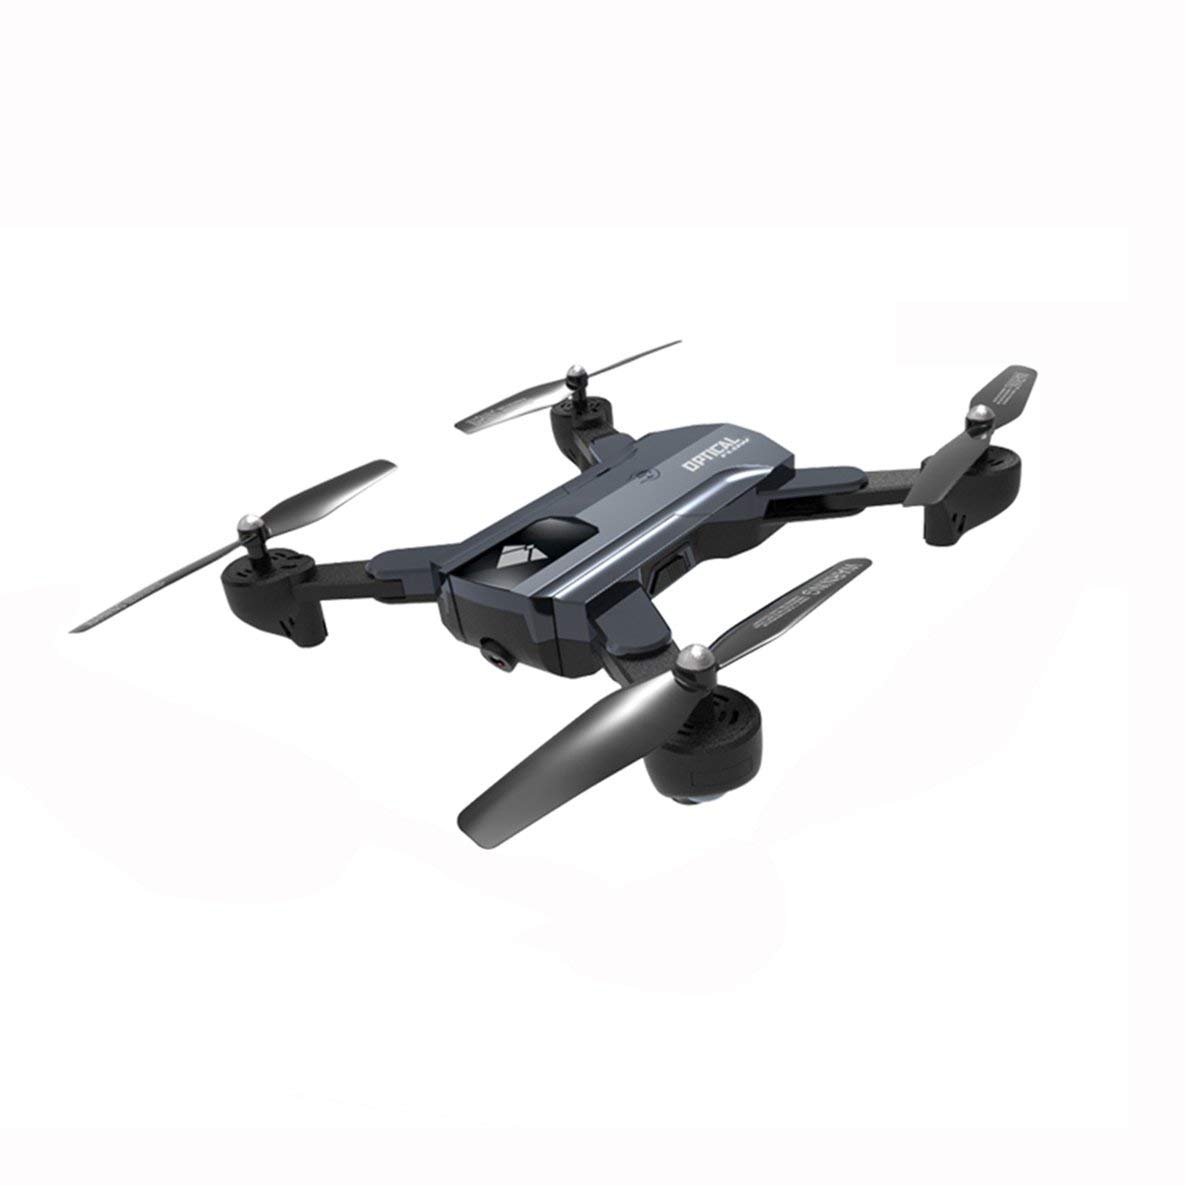 F196 Optical Flow Foldable Quadcopter RC Drone with 2MP Camera 1100mAh Battery